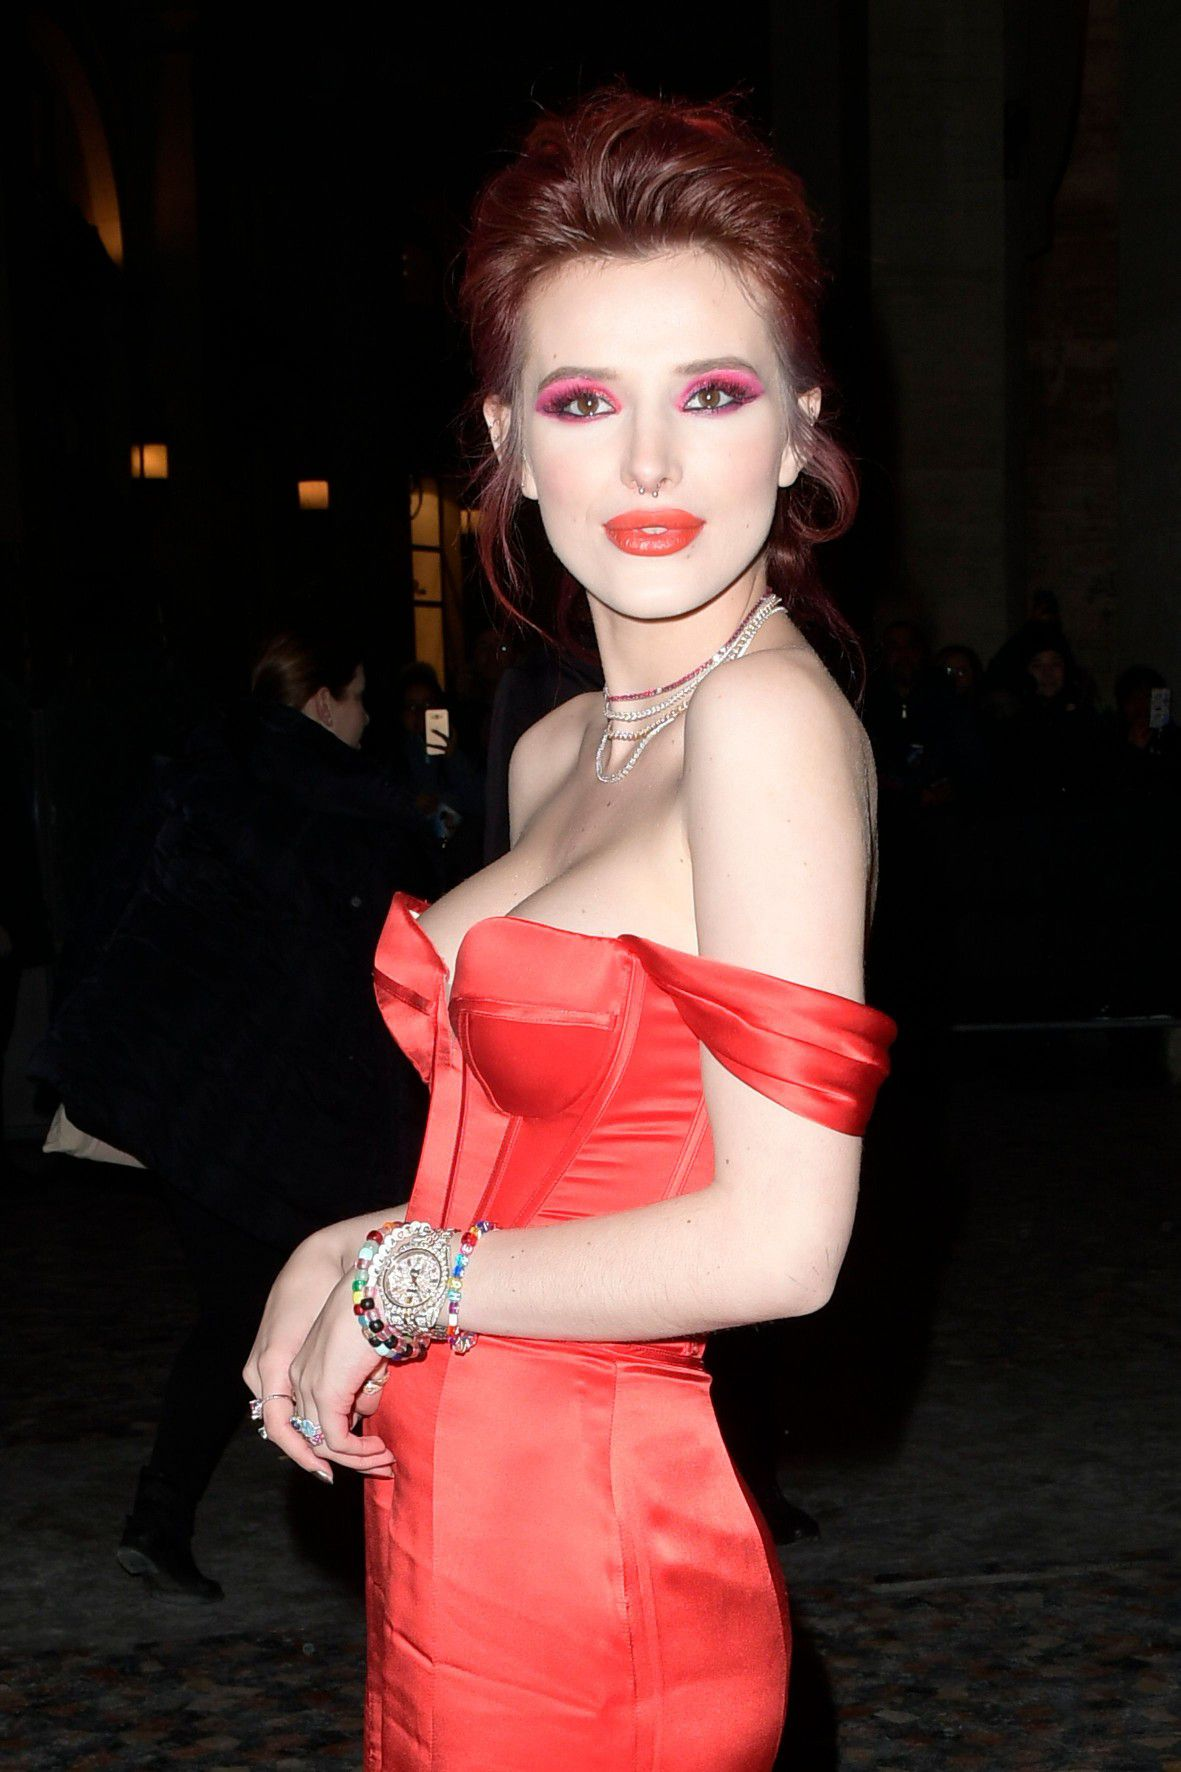 bella-thorne-deep-cleavage-at-midnight-run-premiere-in-rome-1469